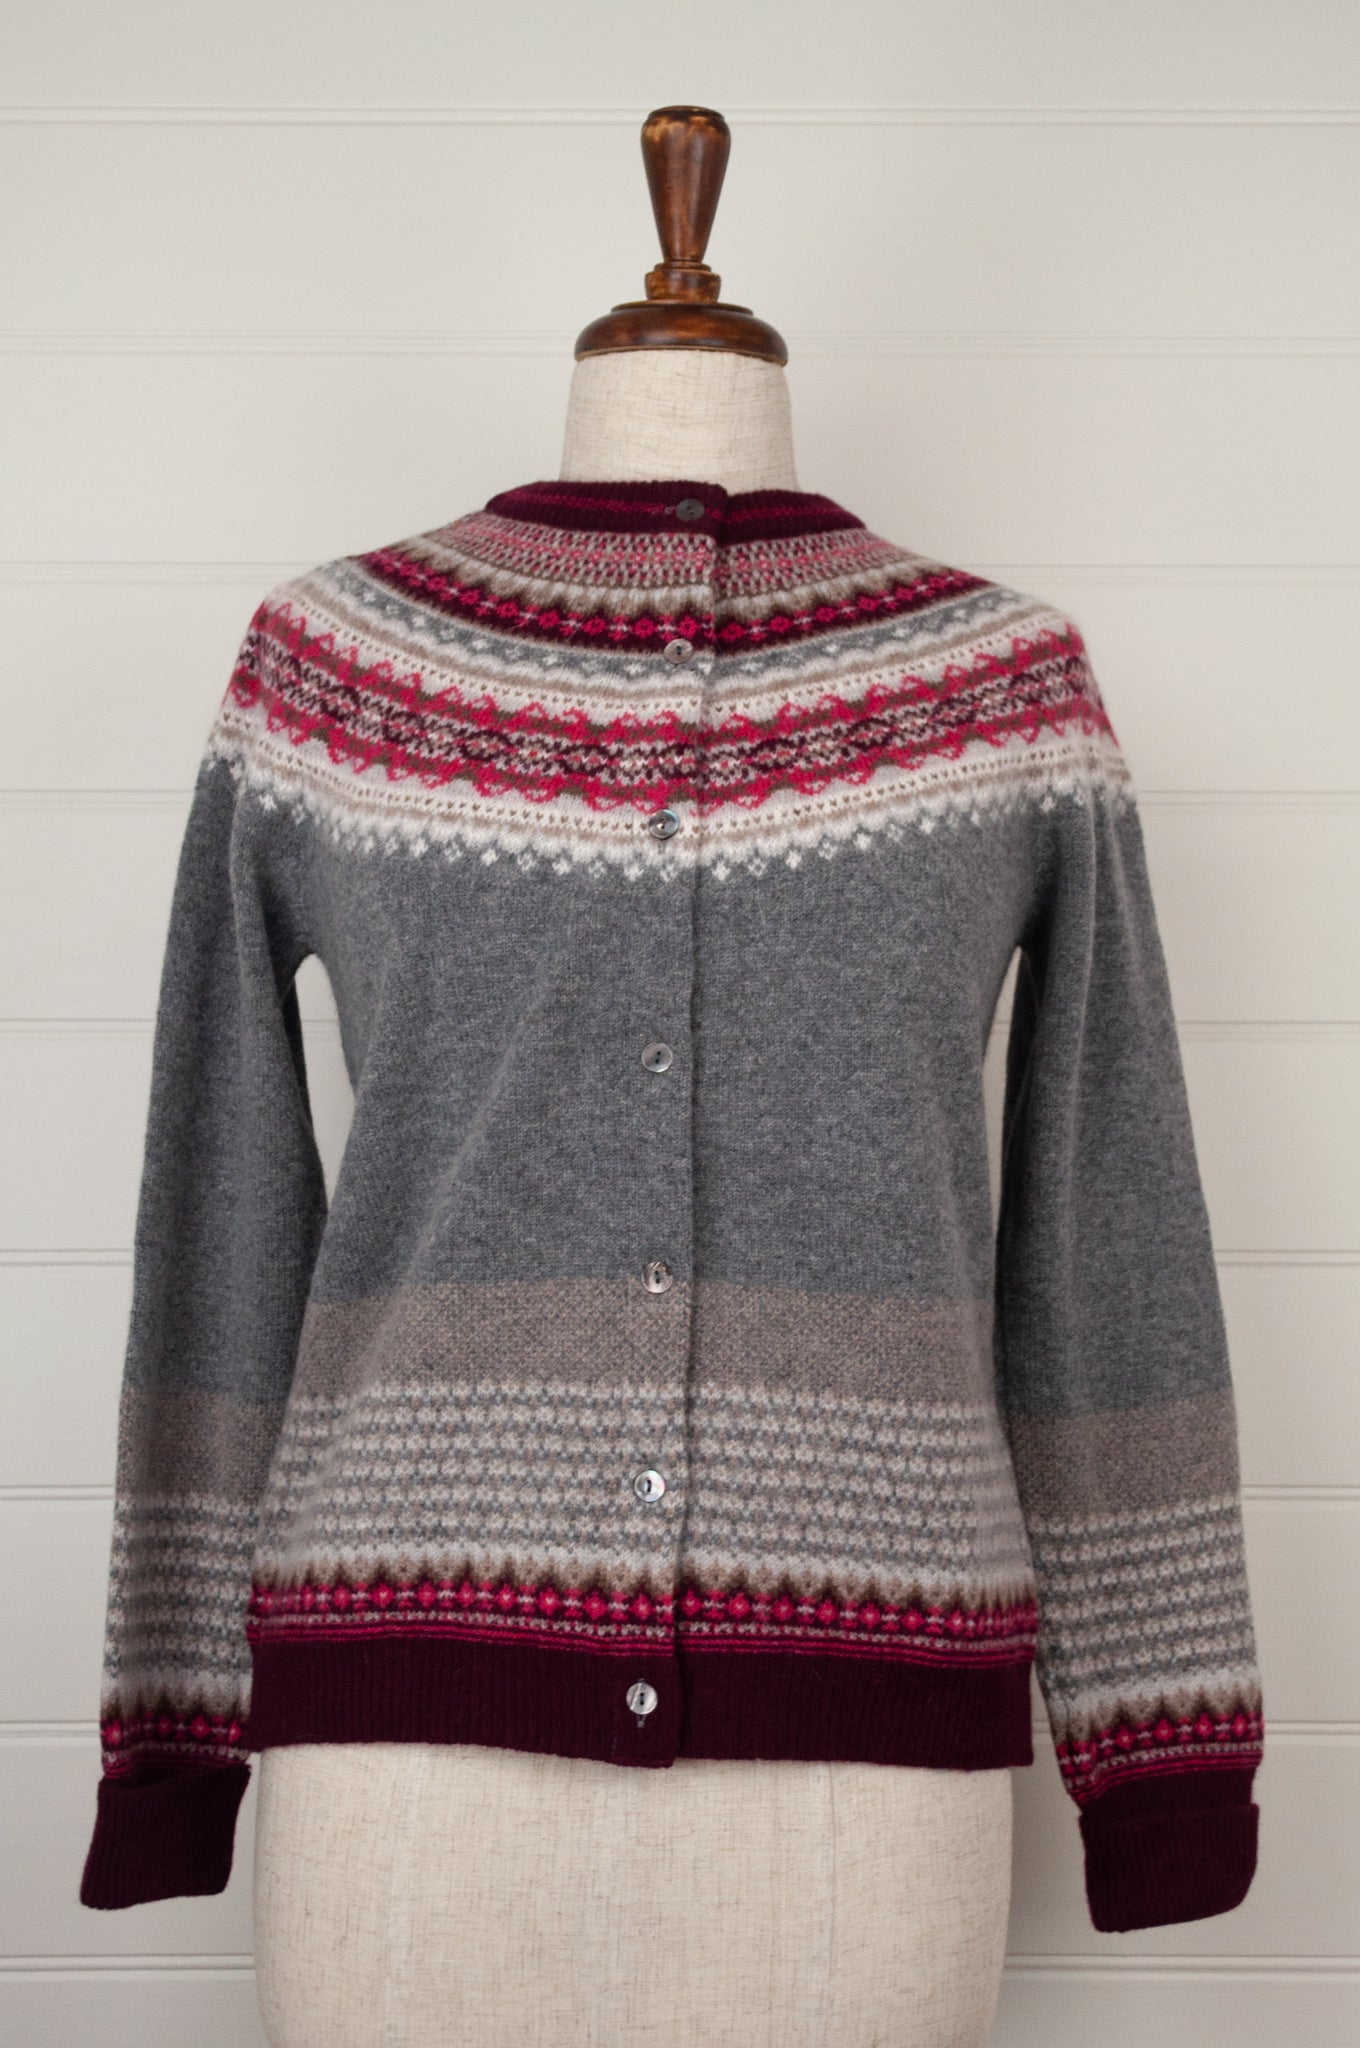 Made in Scotland, Eribé pure wool fairisle cardigan in Greyberry, soft charcoal with patterned yoke and trim in shades of rich berry reds and pinks, ecru and stone.